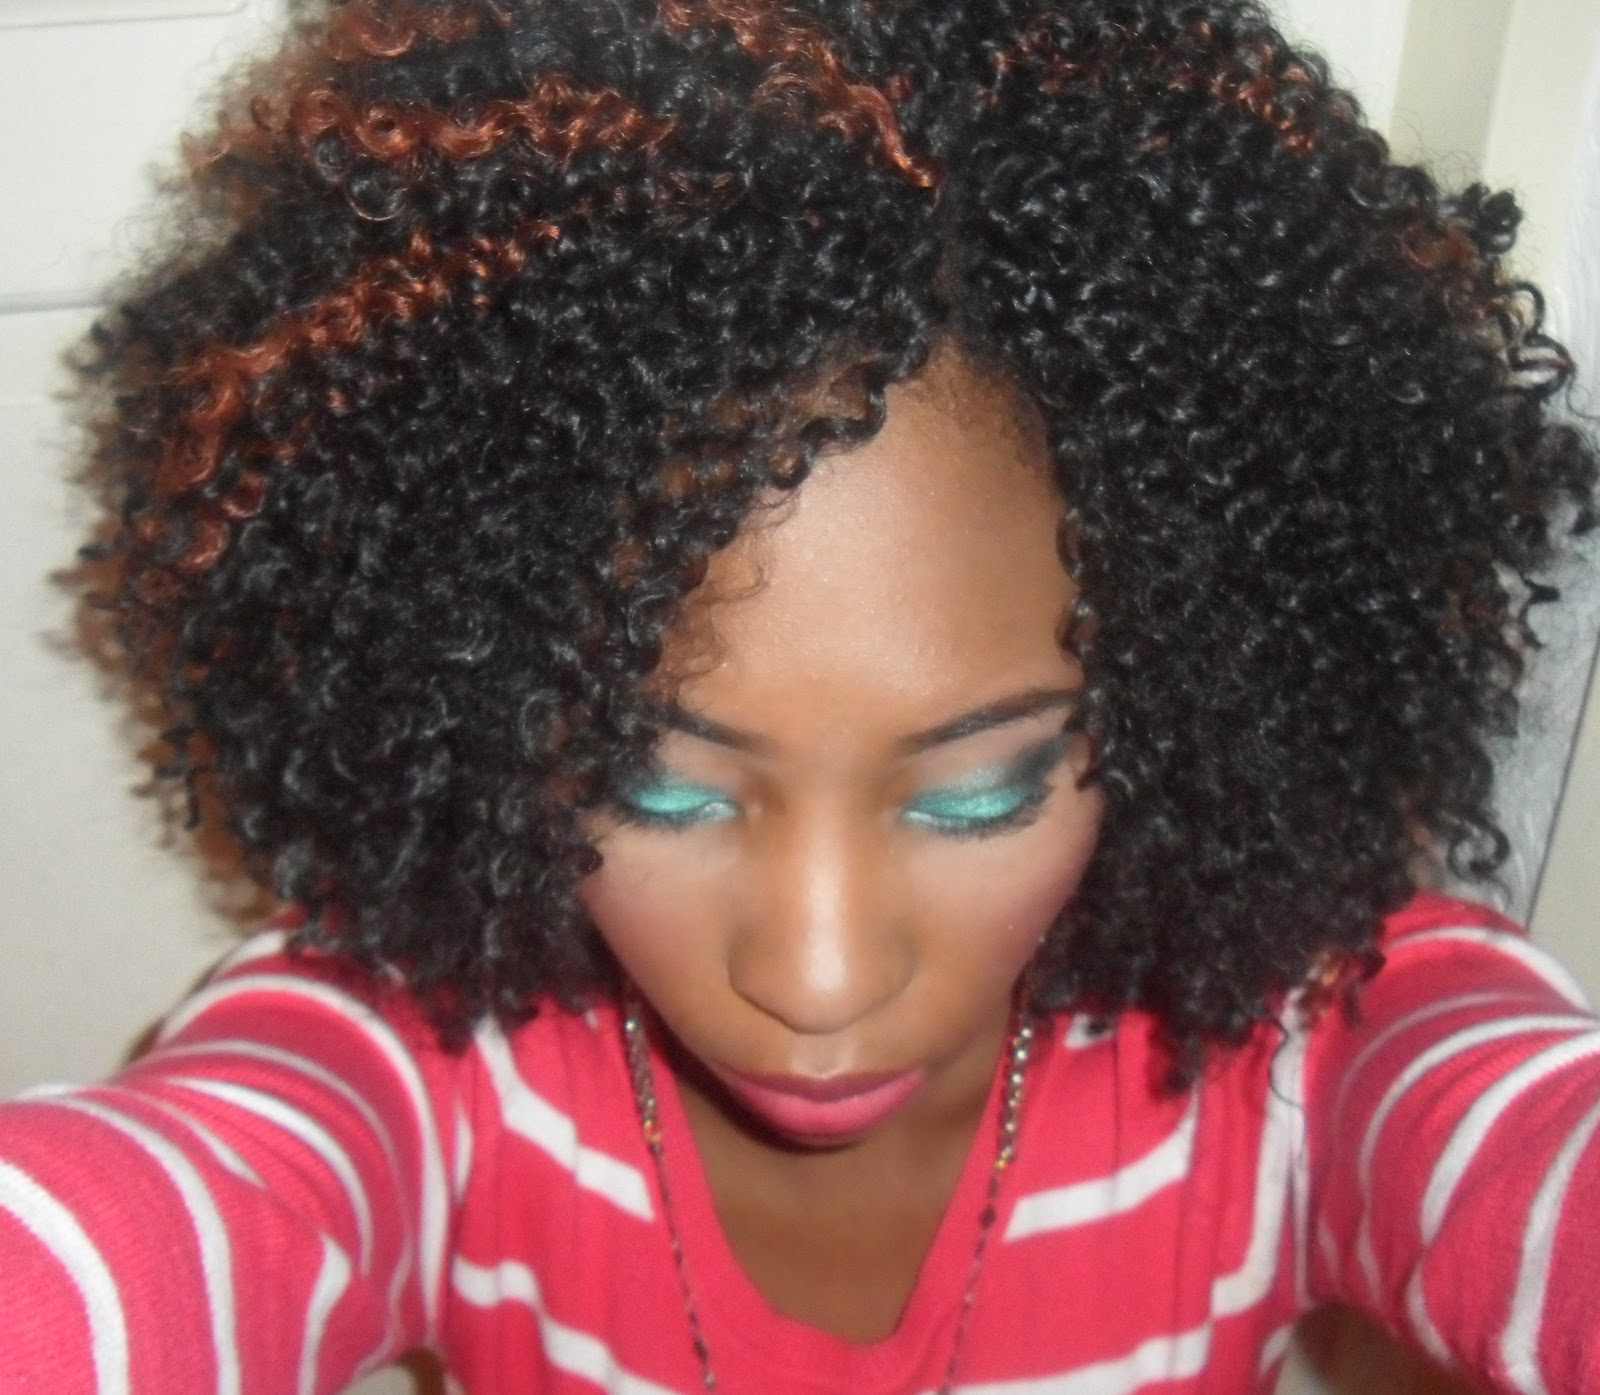 Crochet Hair On Short Hair : Any questions, e-mail me at nubianpride@live.co.uk / tweet me @Ray ...